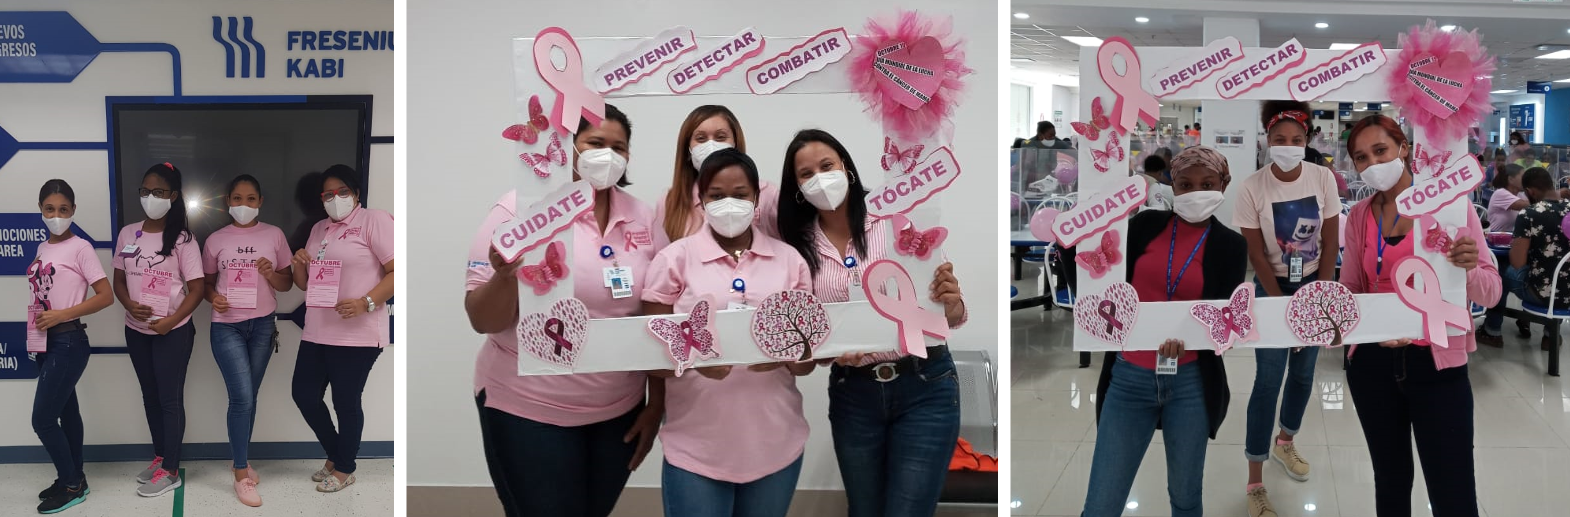 Fresenius Kabi Haina, Dominican Republic - Breast Cancer Awareness Month - Campaign